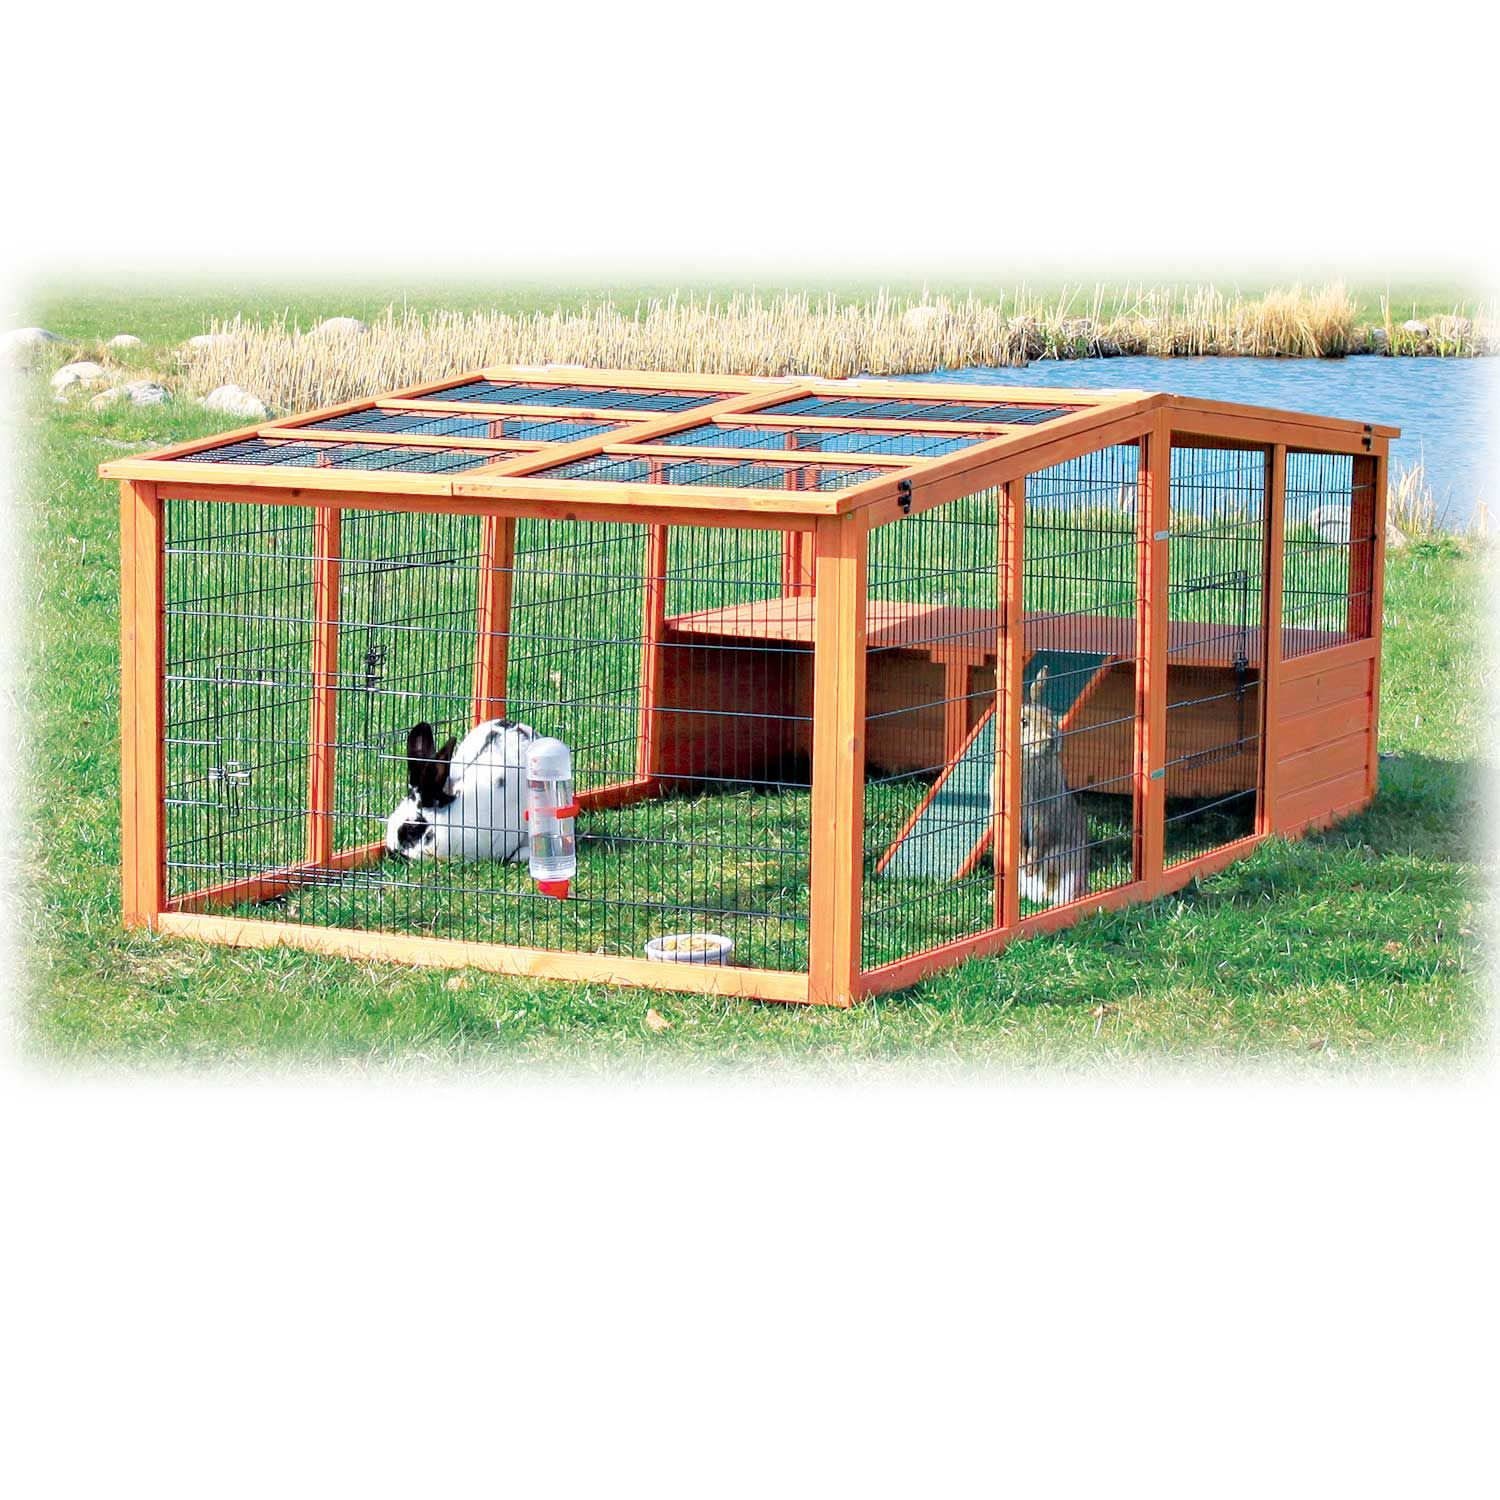 Trixie Natura Peaked Roof Outdoor Rabbit Run with Shelter ...